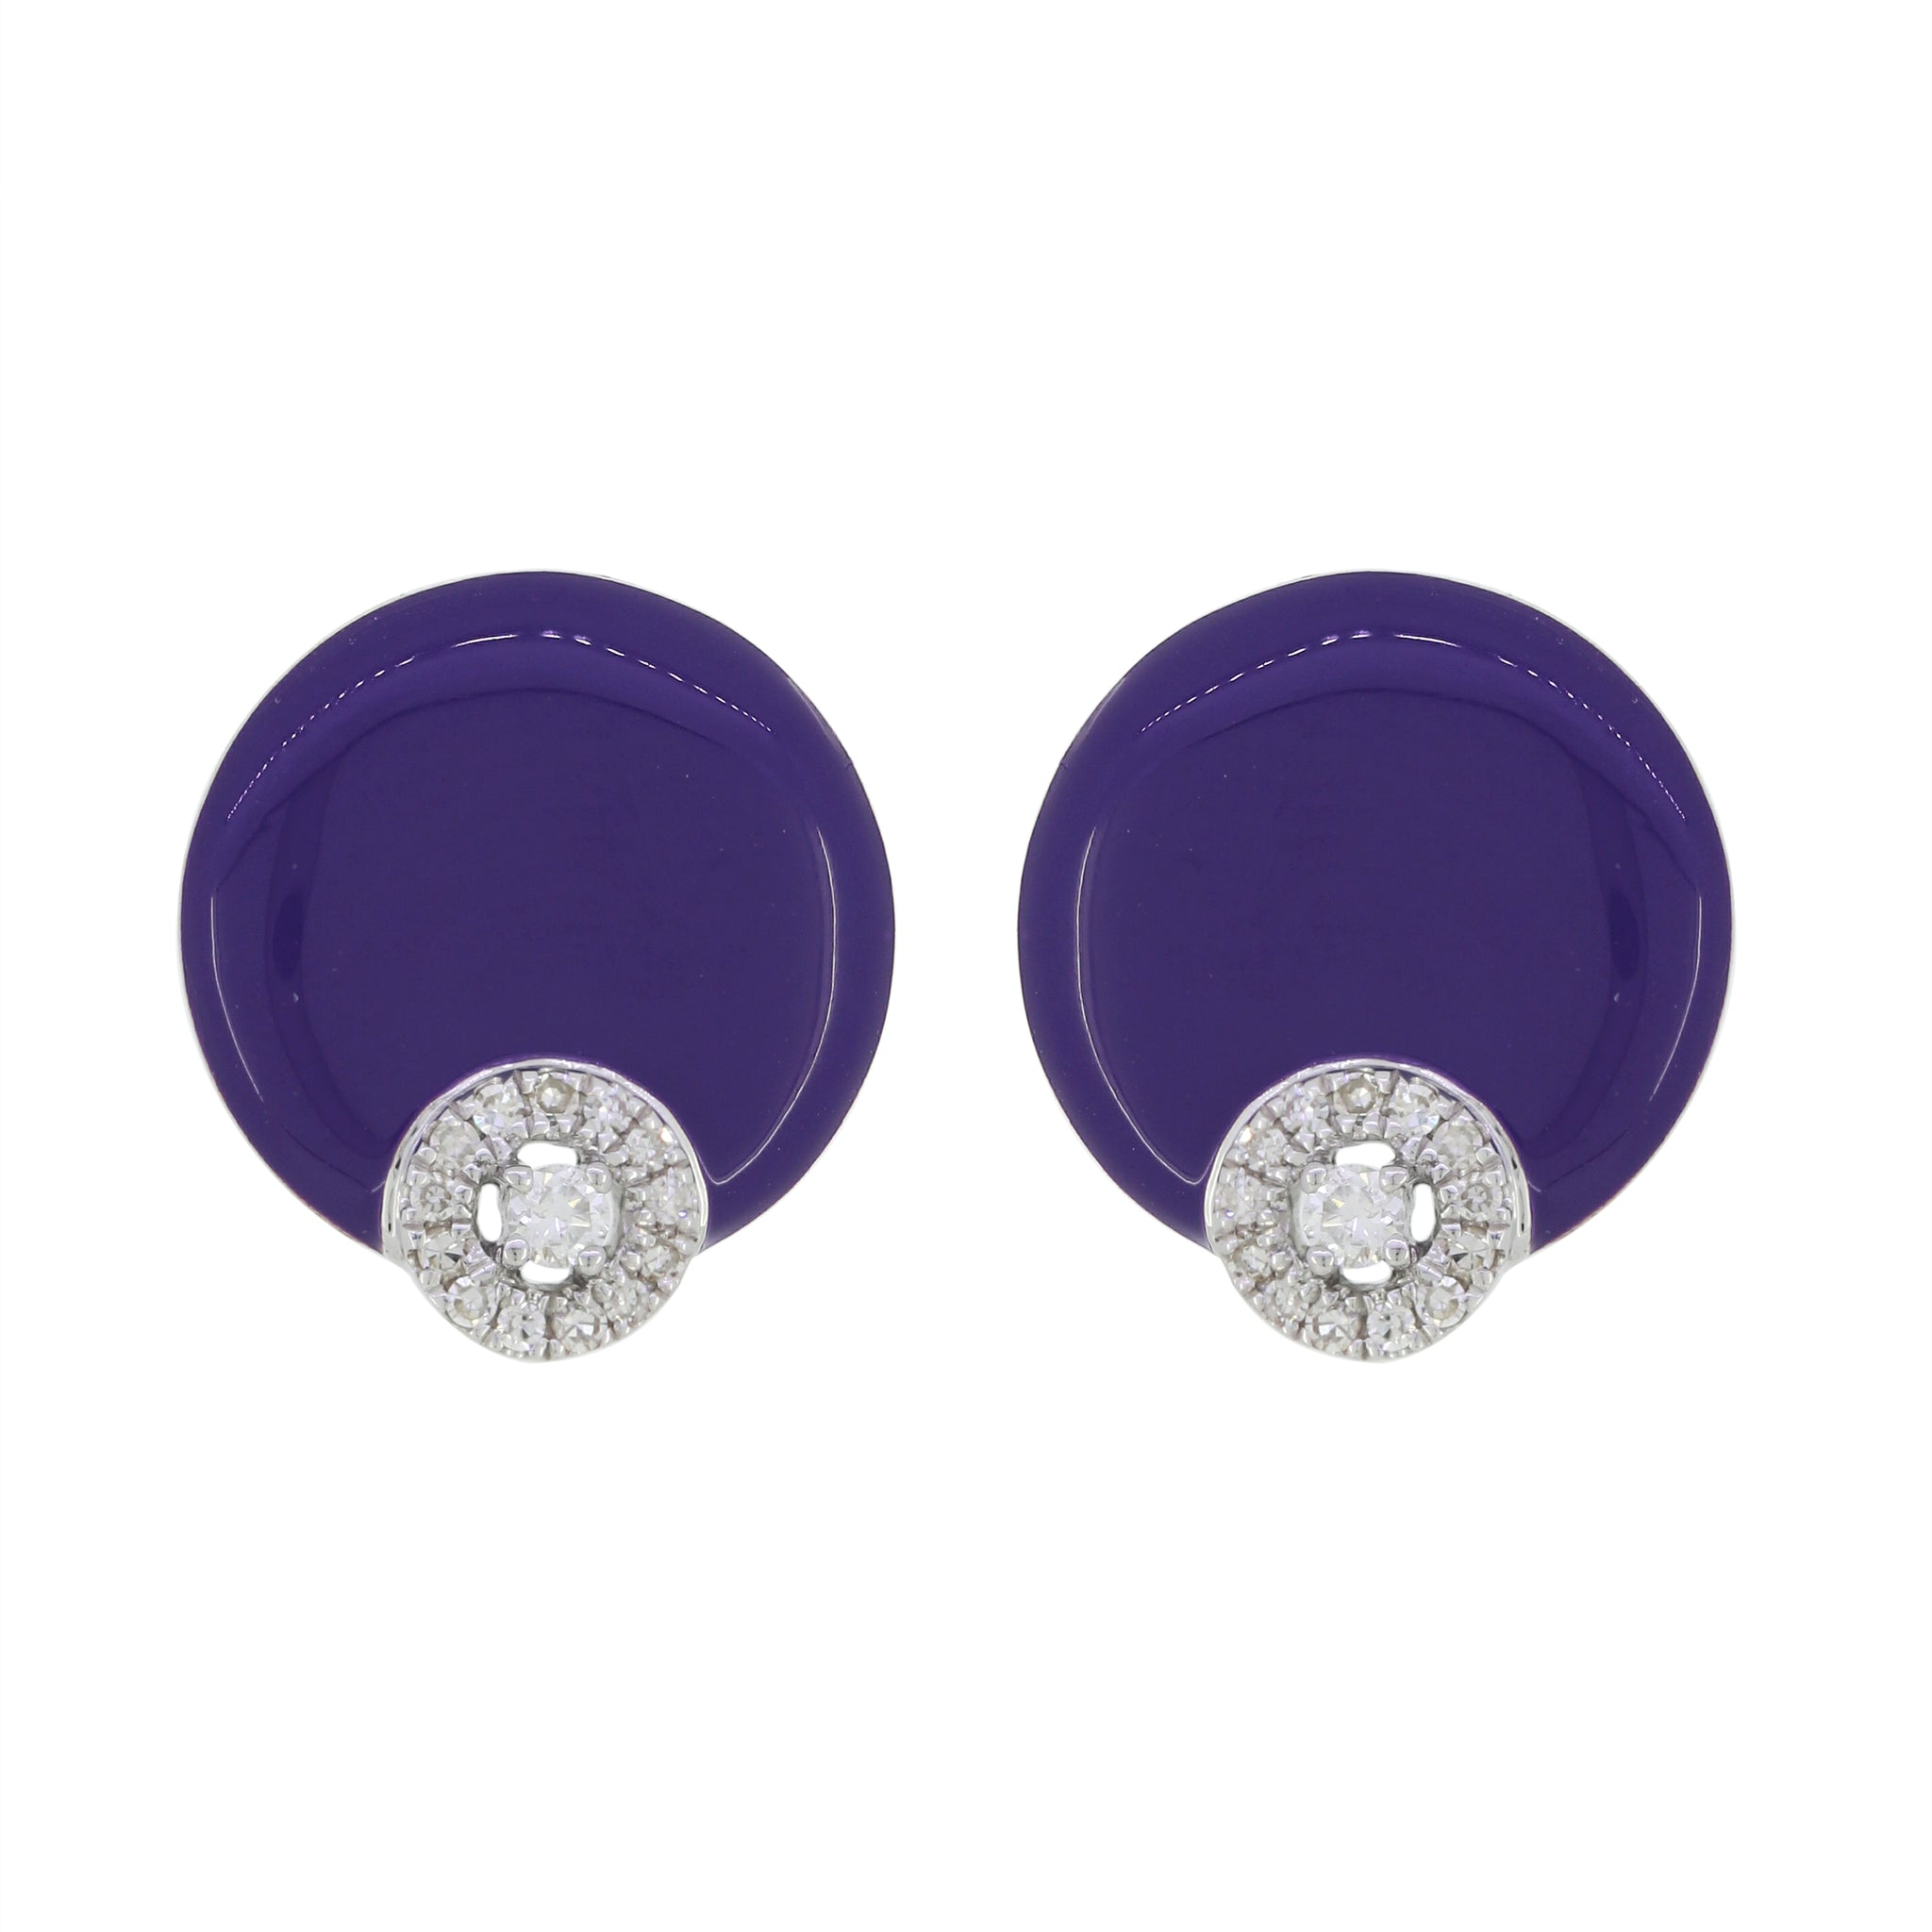 18K Gold Purple Enamel and Diamonds Studs Earrings